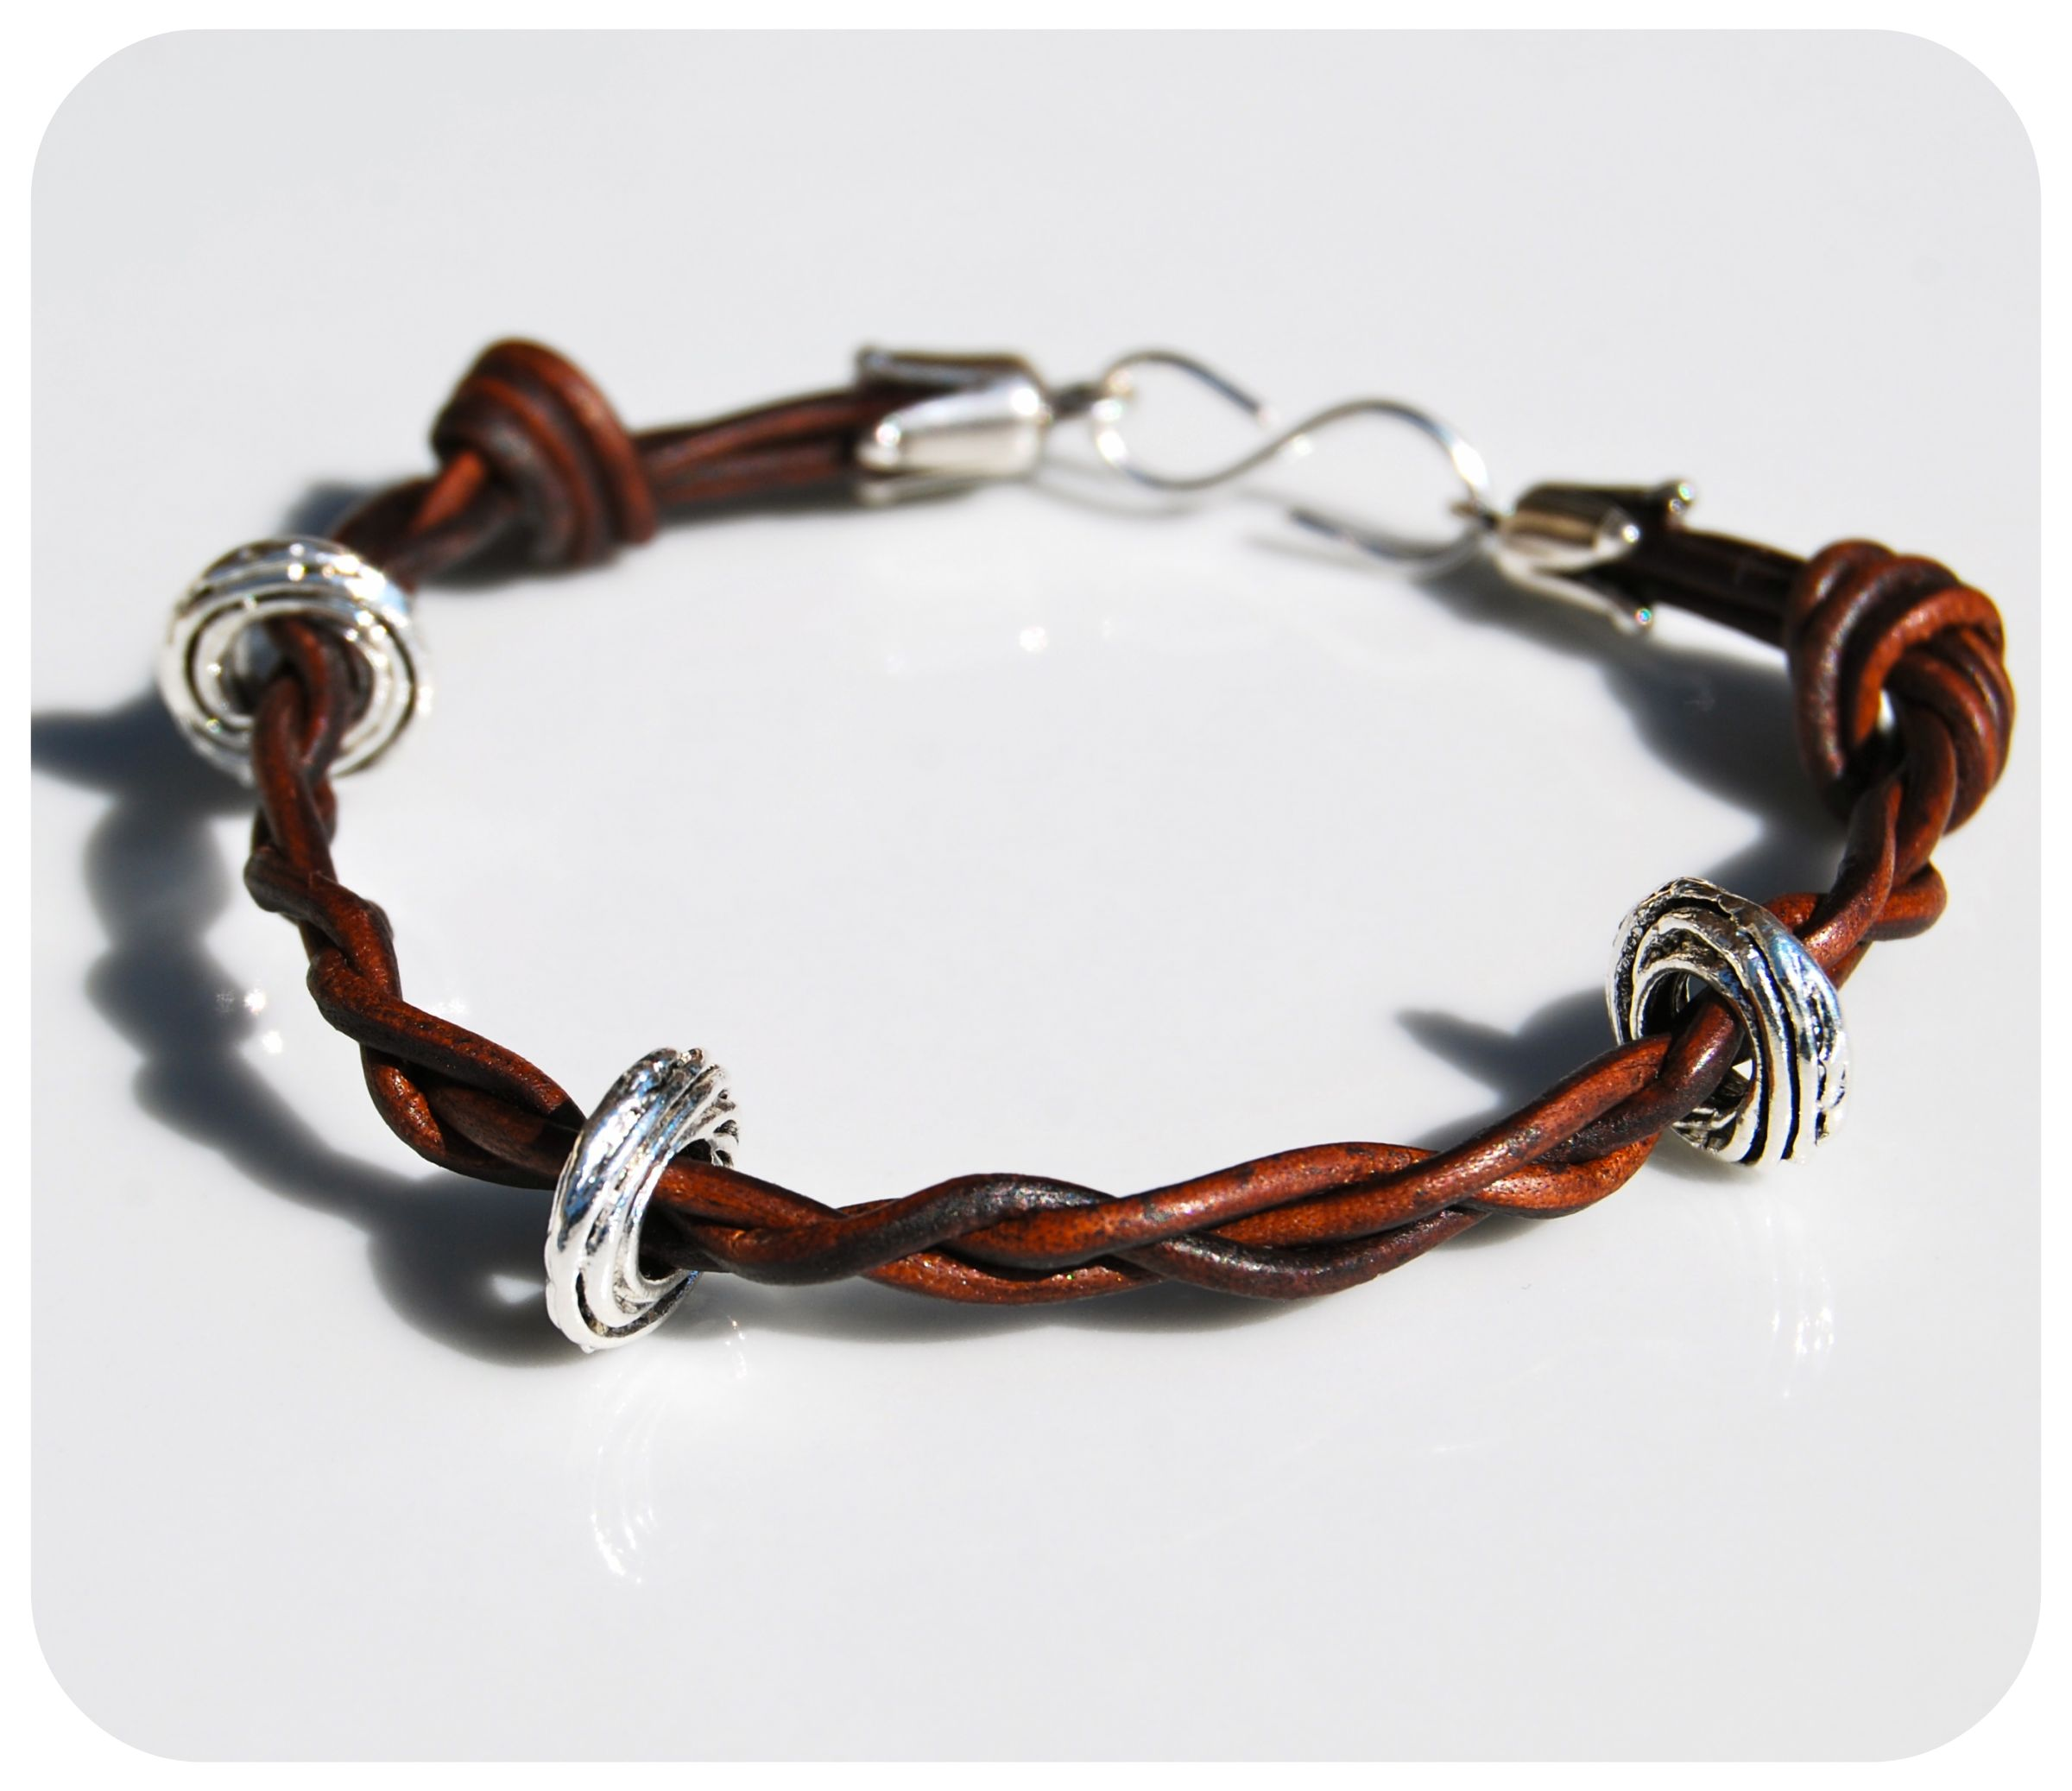 leather cord bracelets make bracelets